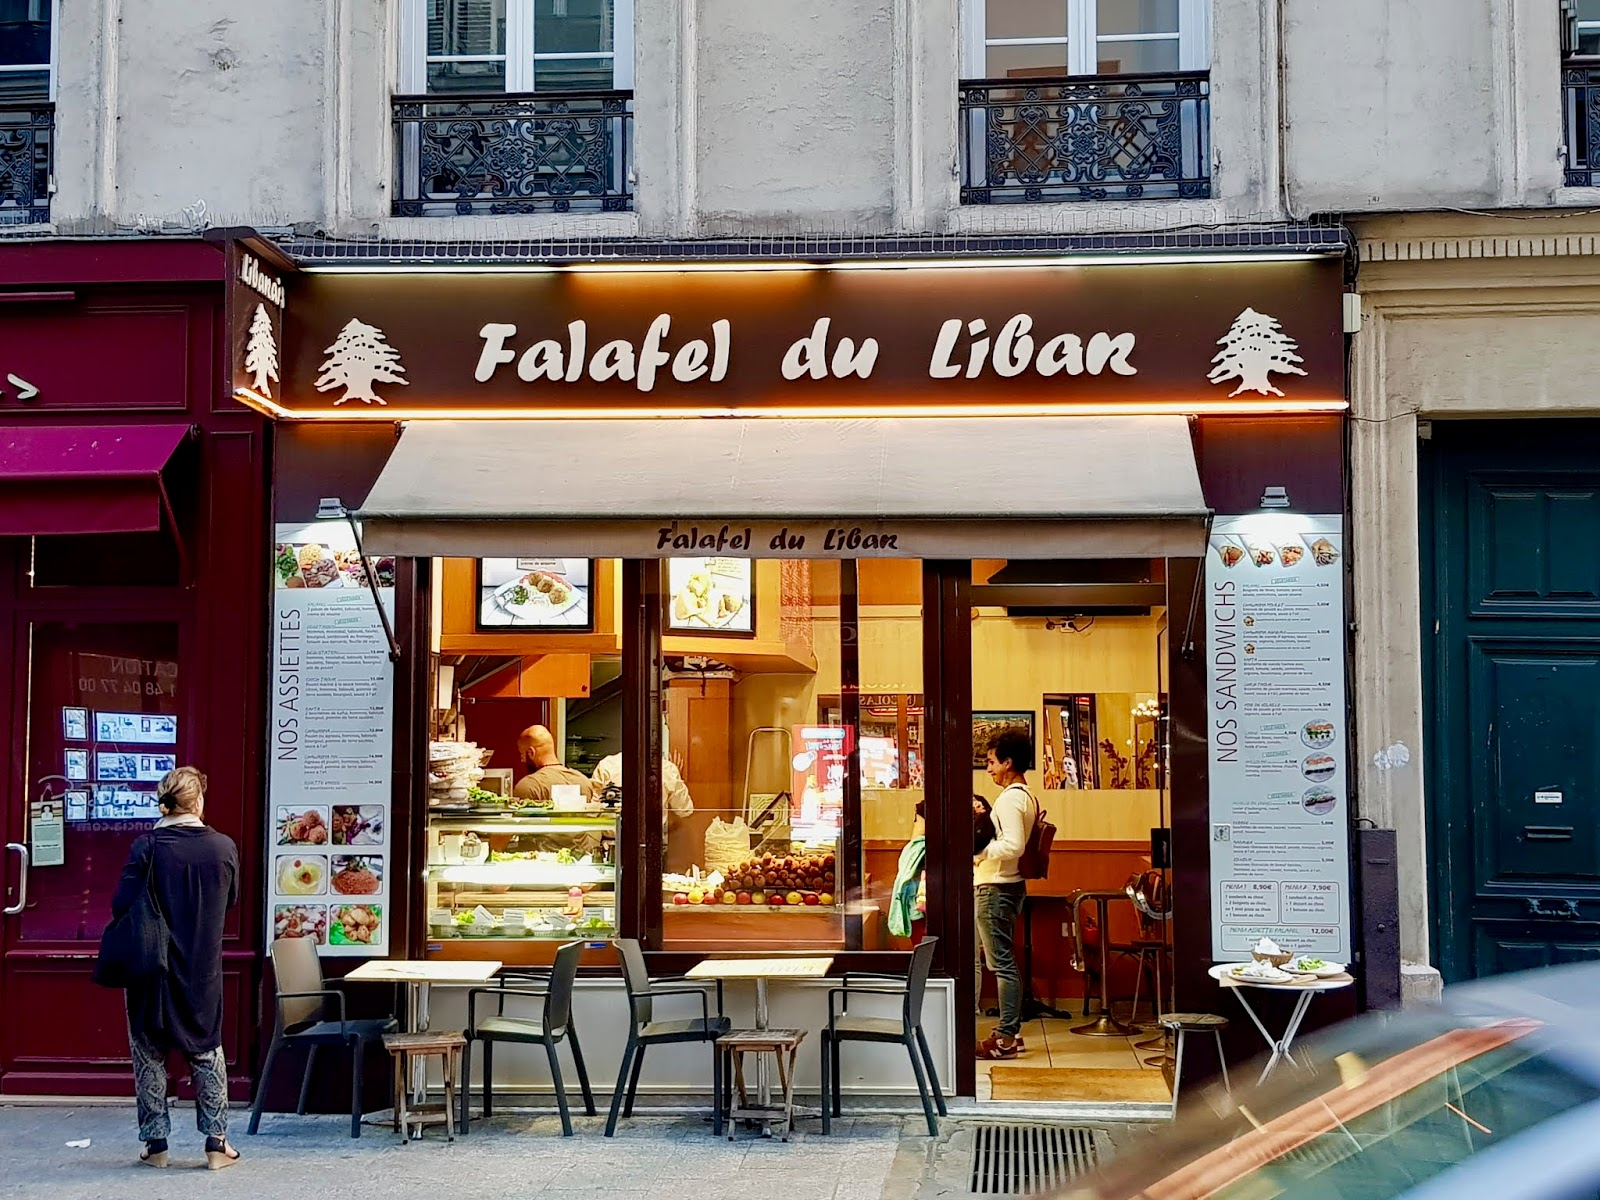 exterior of falafel du liban restaurant in paris